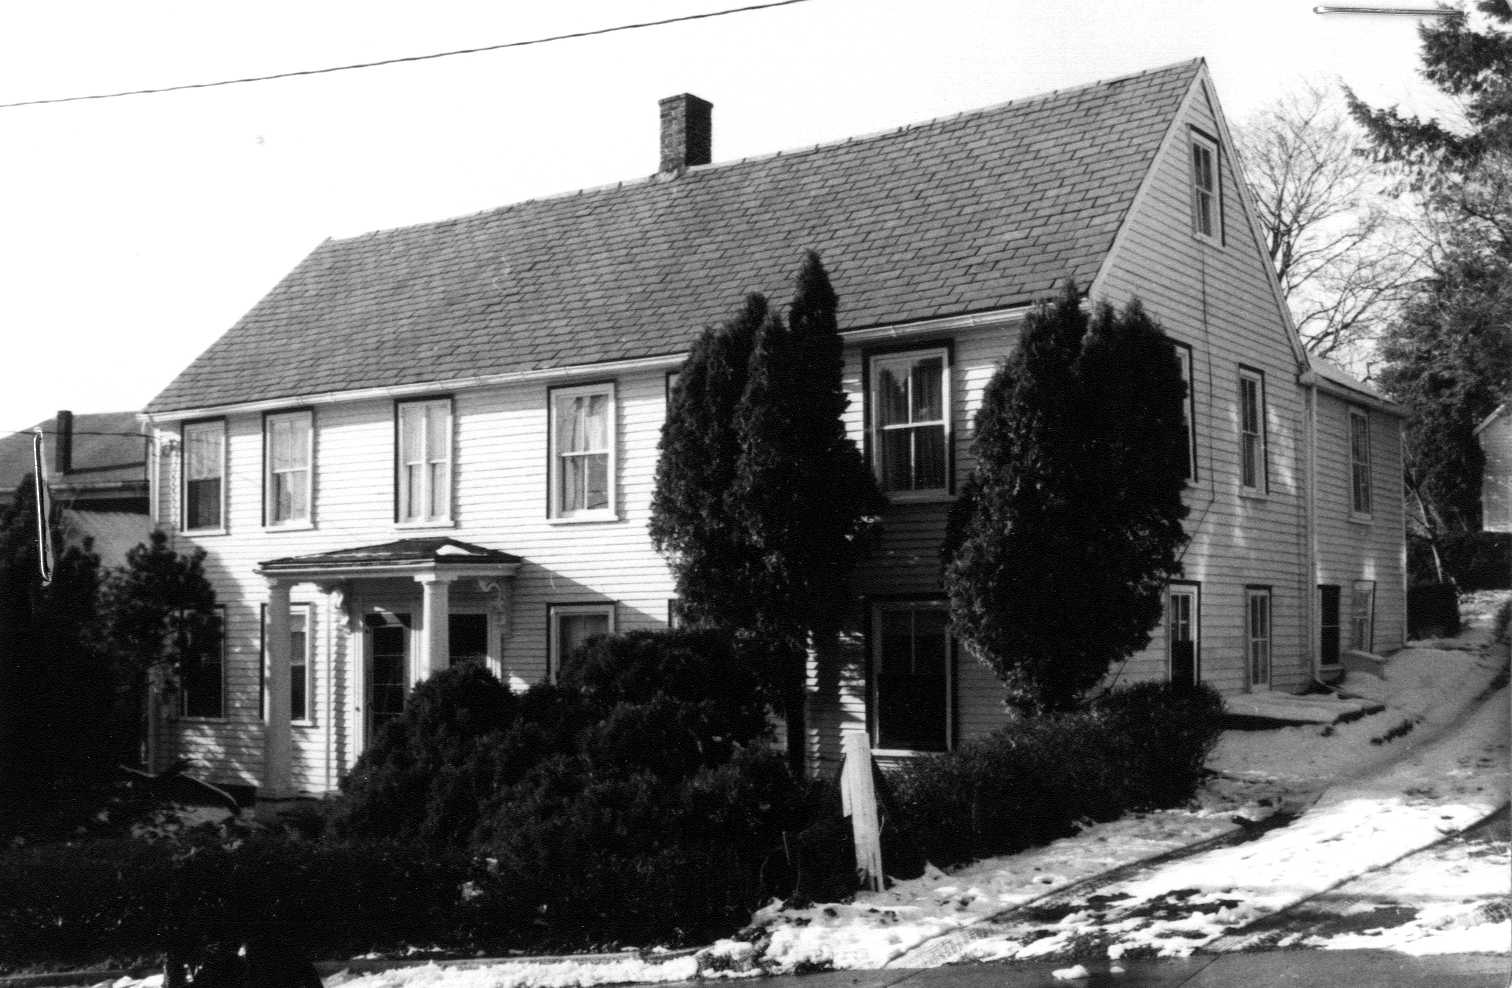 1980 photo of 6-8 N. Main Street